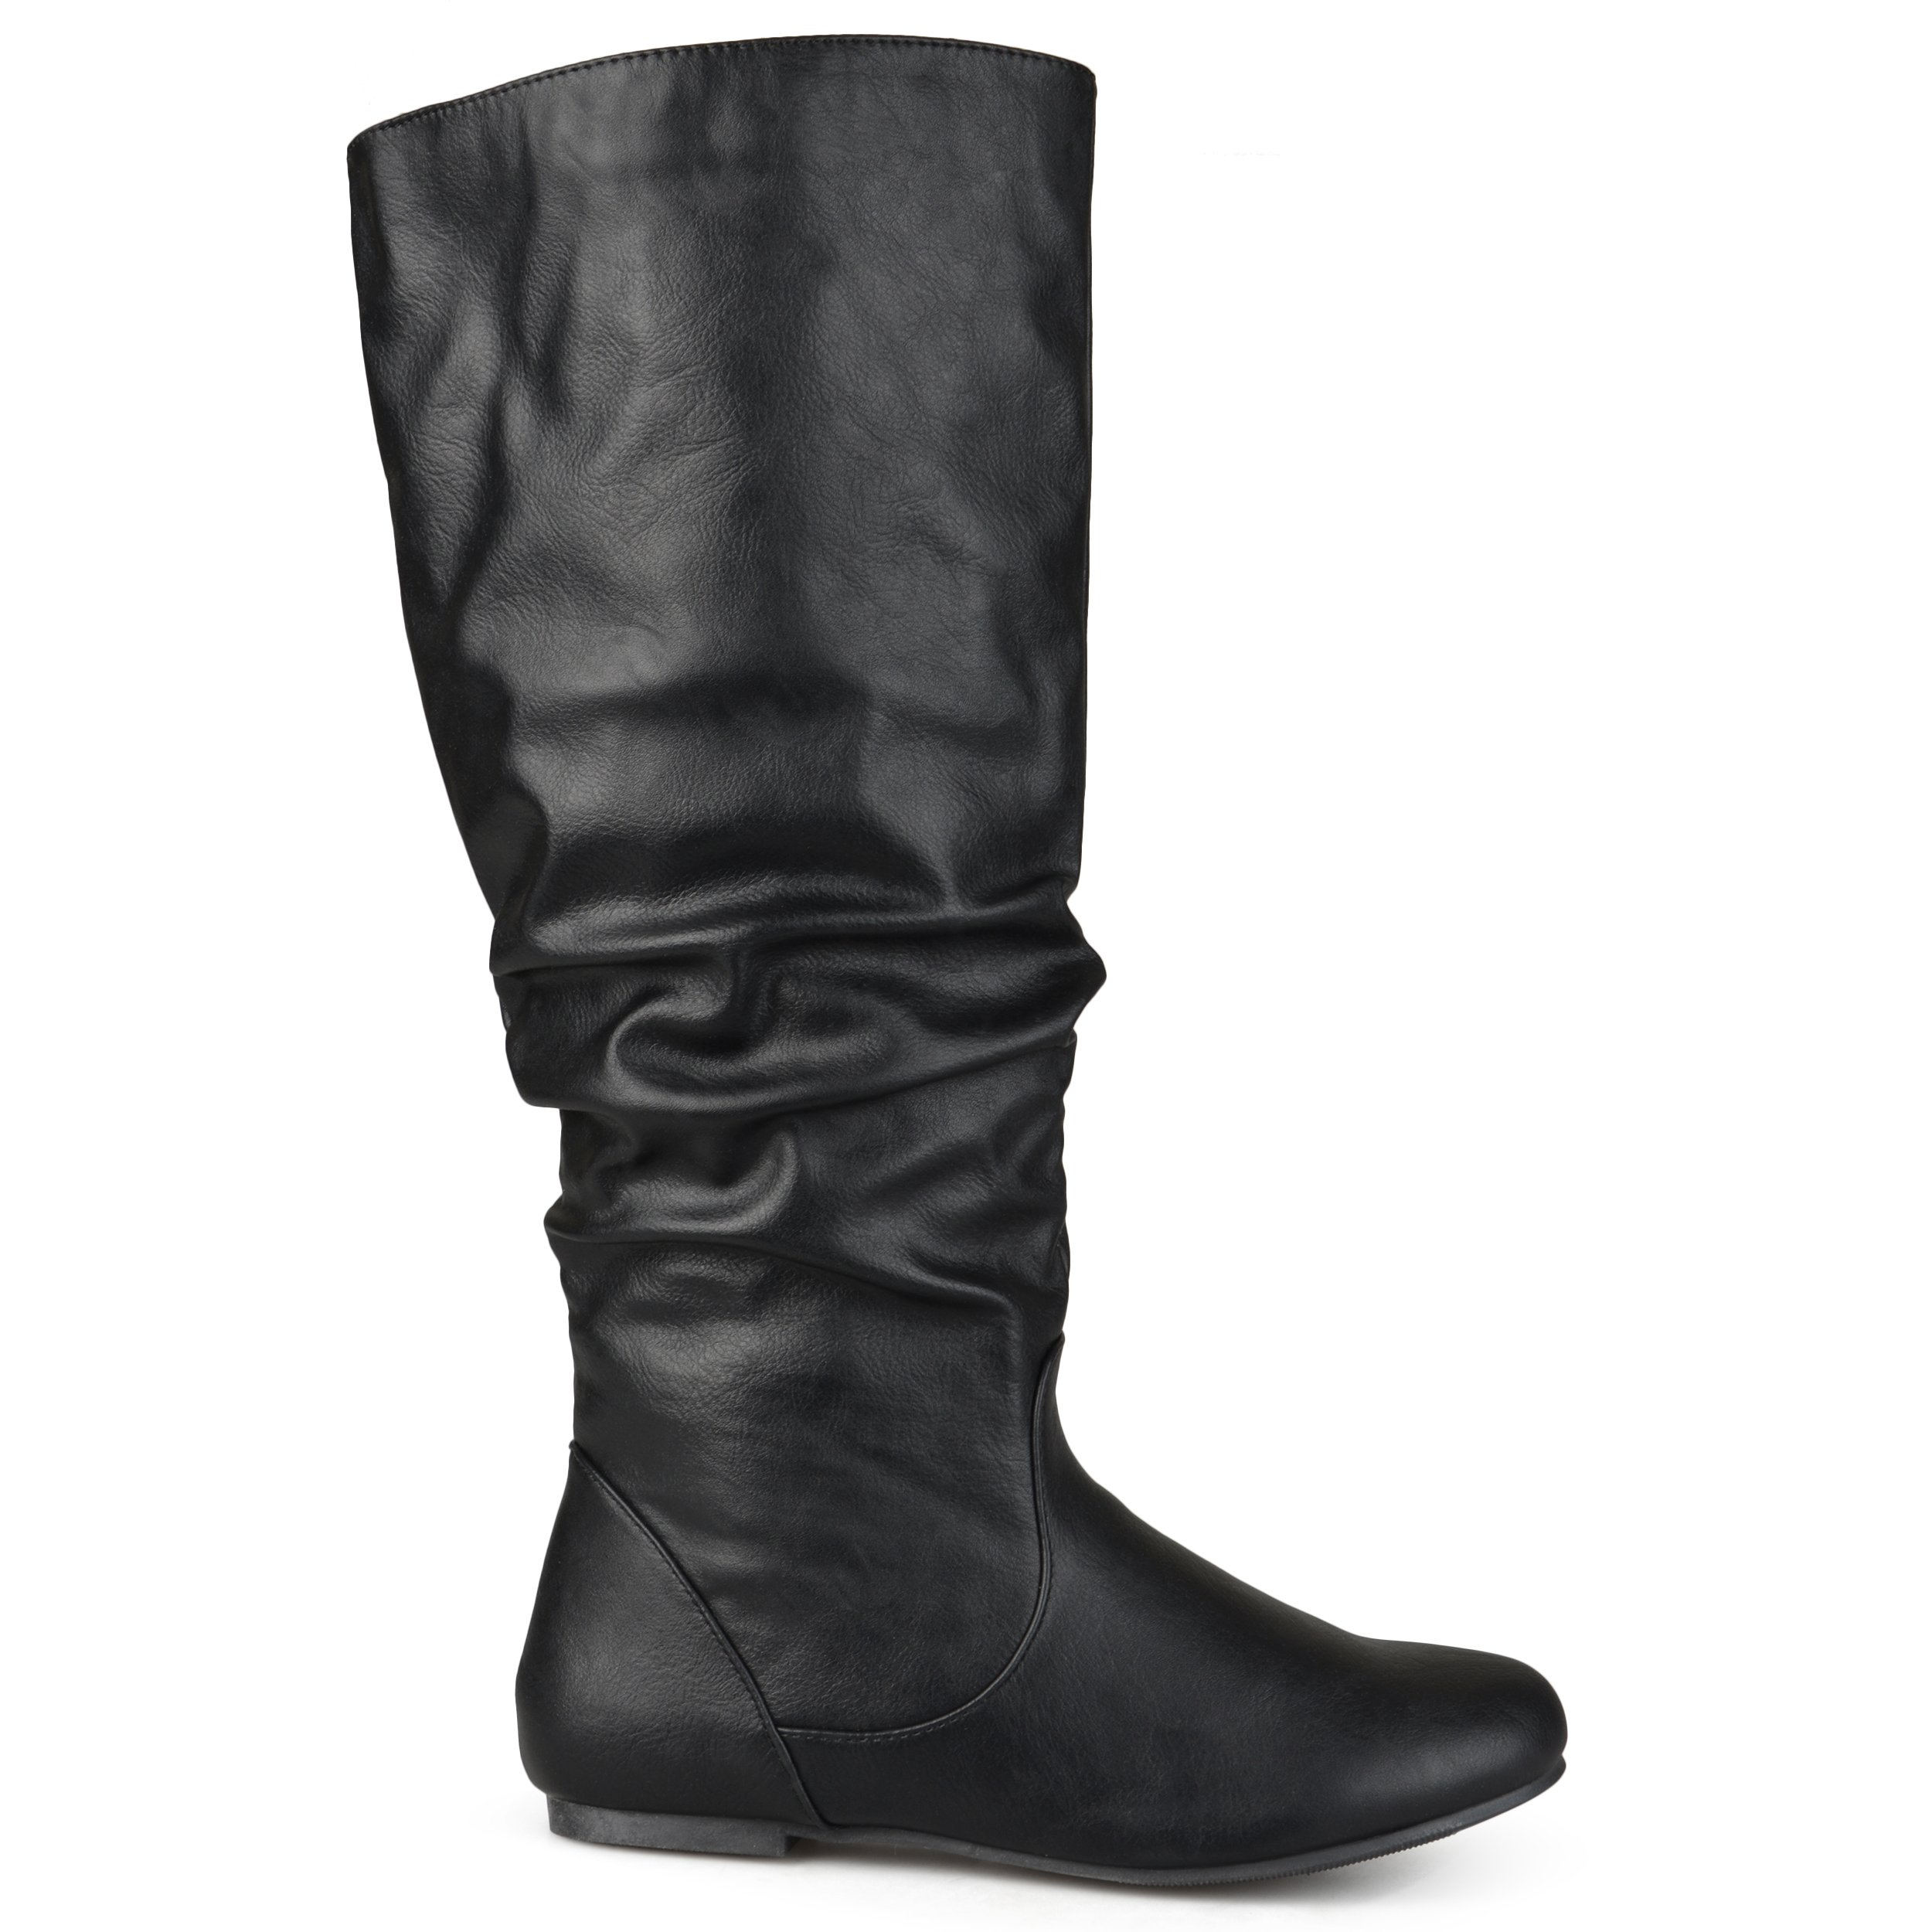 Brinley Co Womens Extra Wide-Calf Mid-Calf Slouch Riding Boots Black, 9.5 Extra Wide Calf US